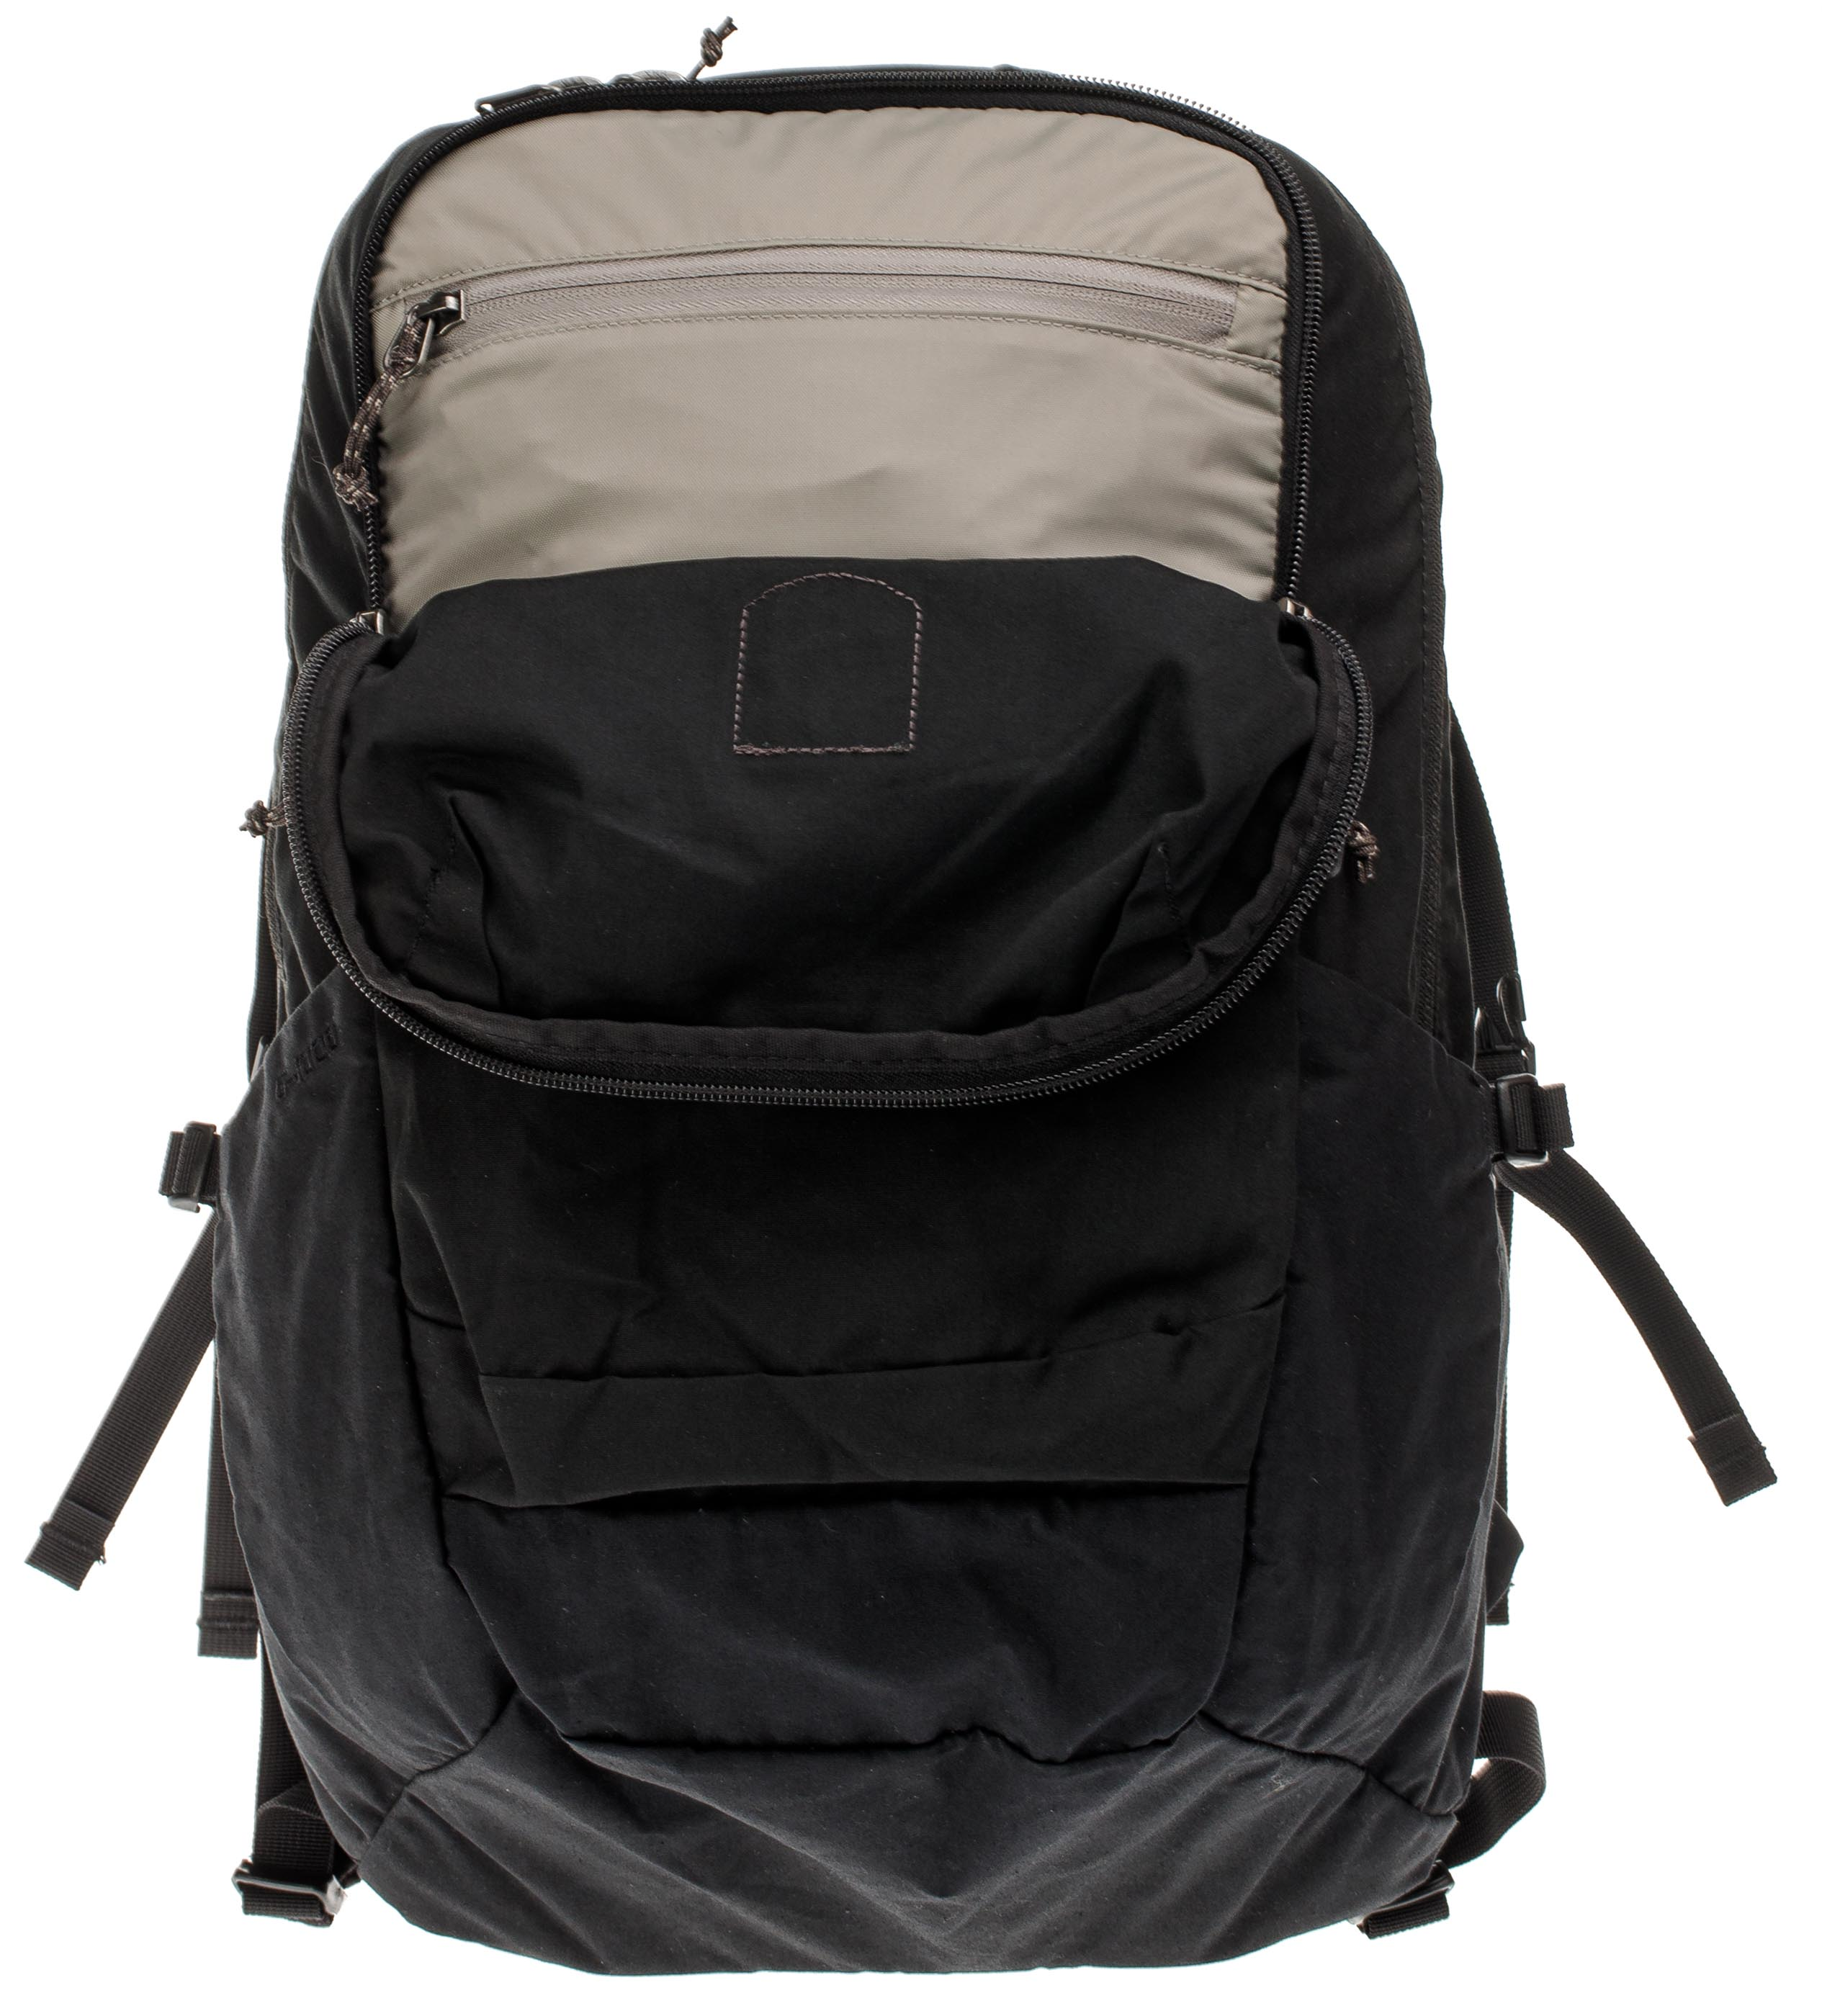 Рюкзак Fjallraven High Coast Trail 26 Black - Фото 4 большая